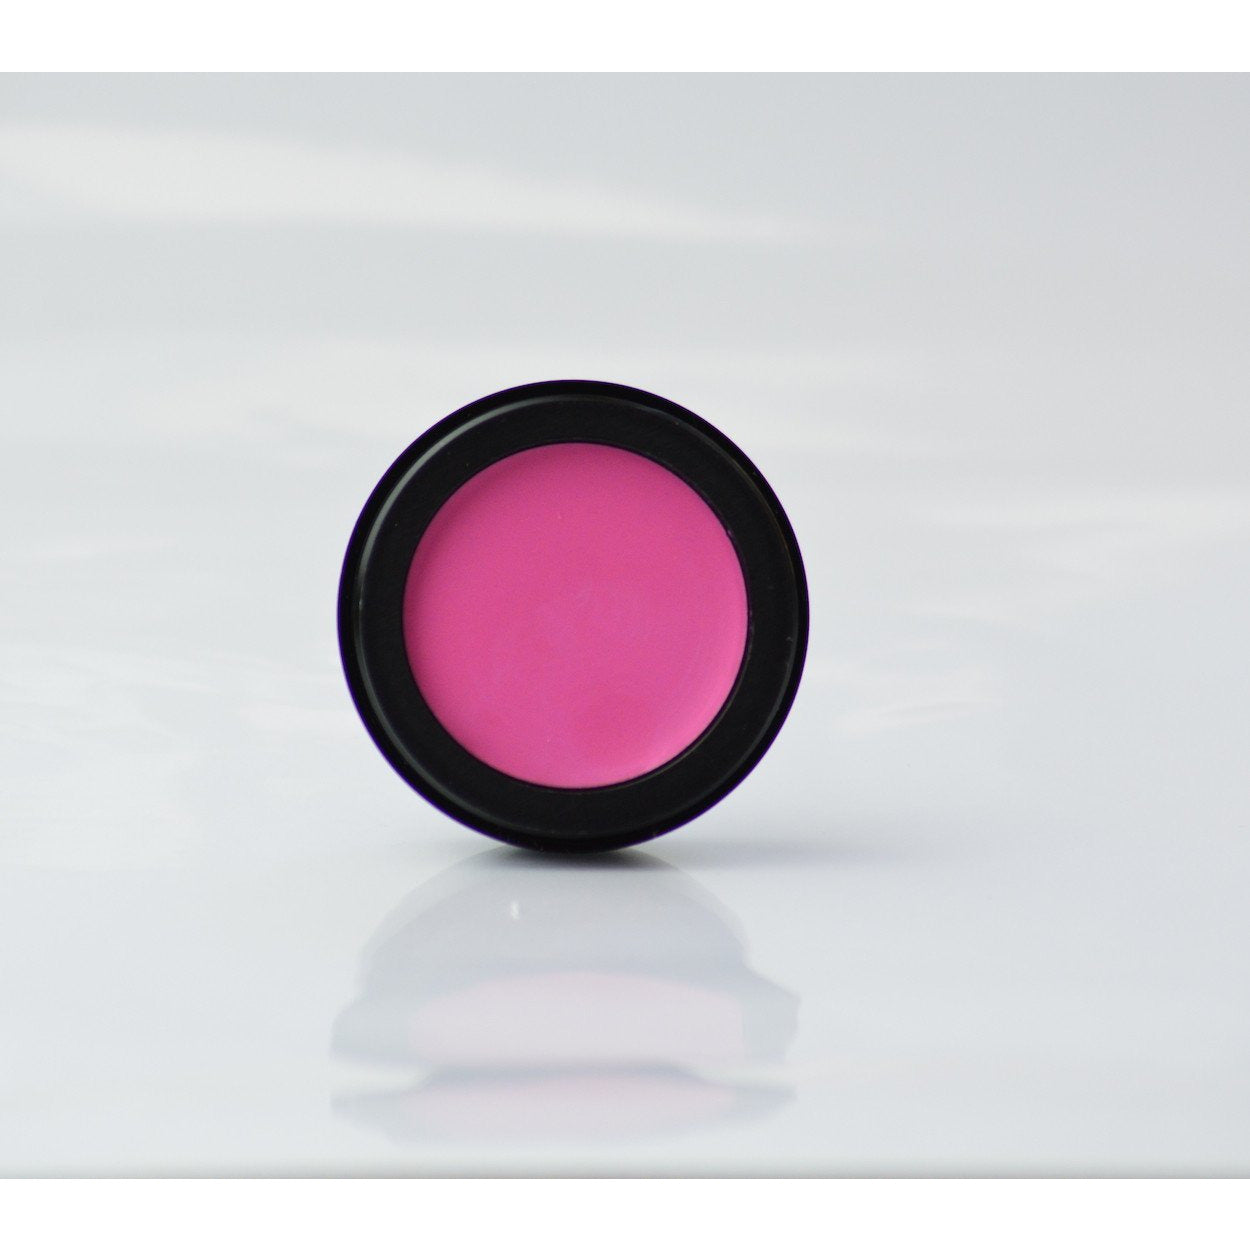 Guilty Pleasure Cosmetics Cheek Cream in Flash Fuschia